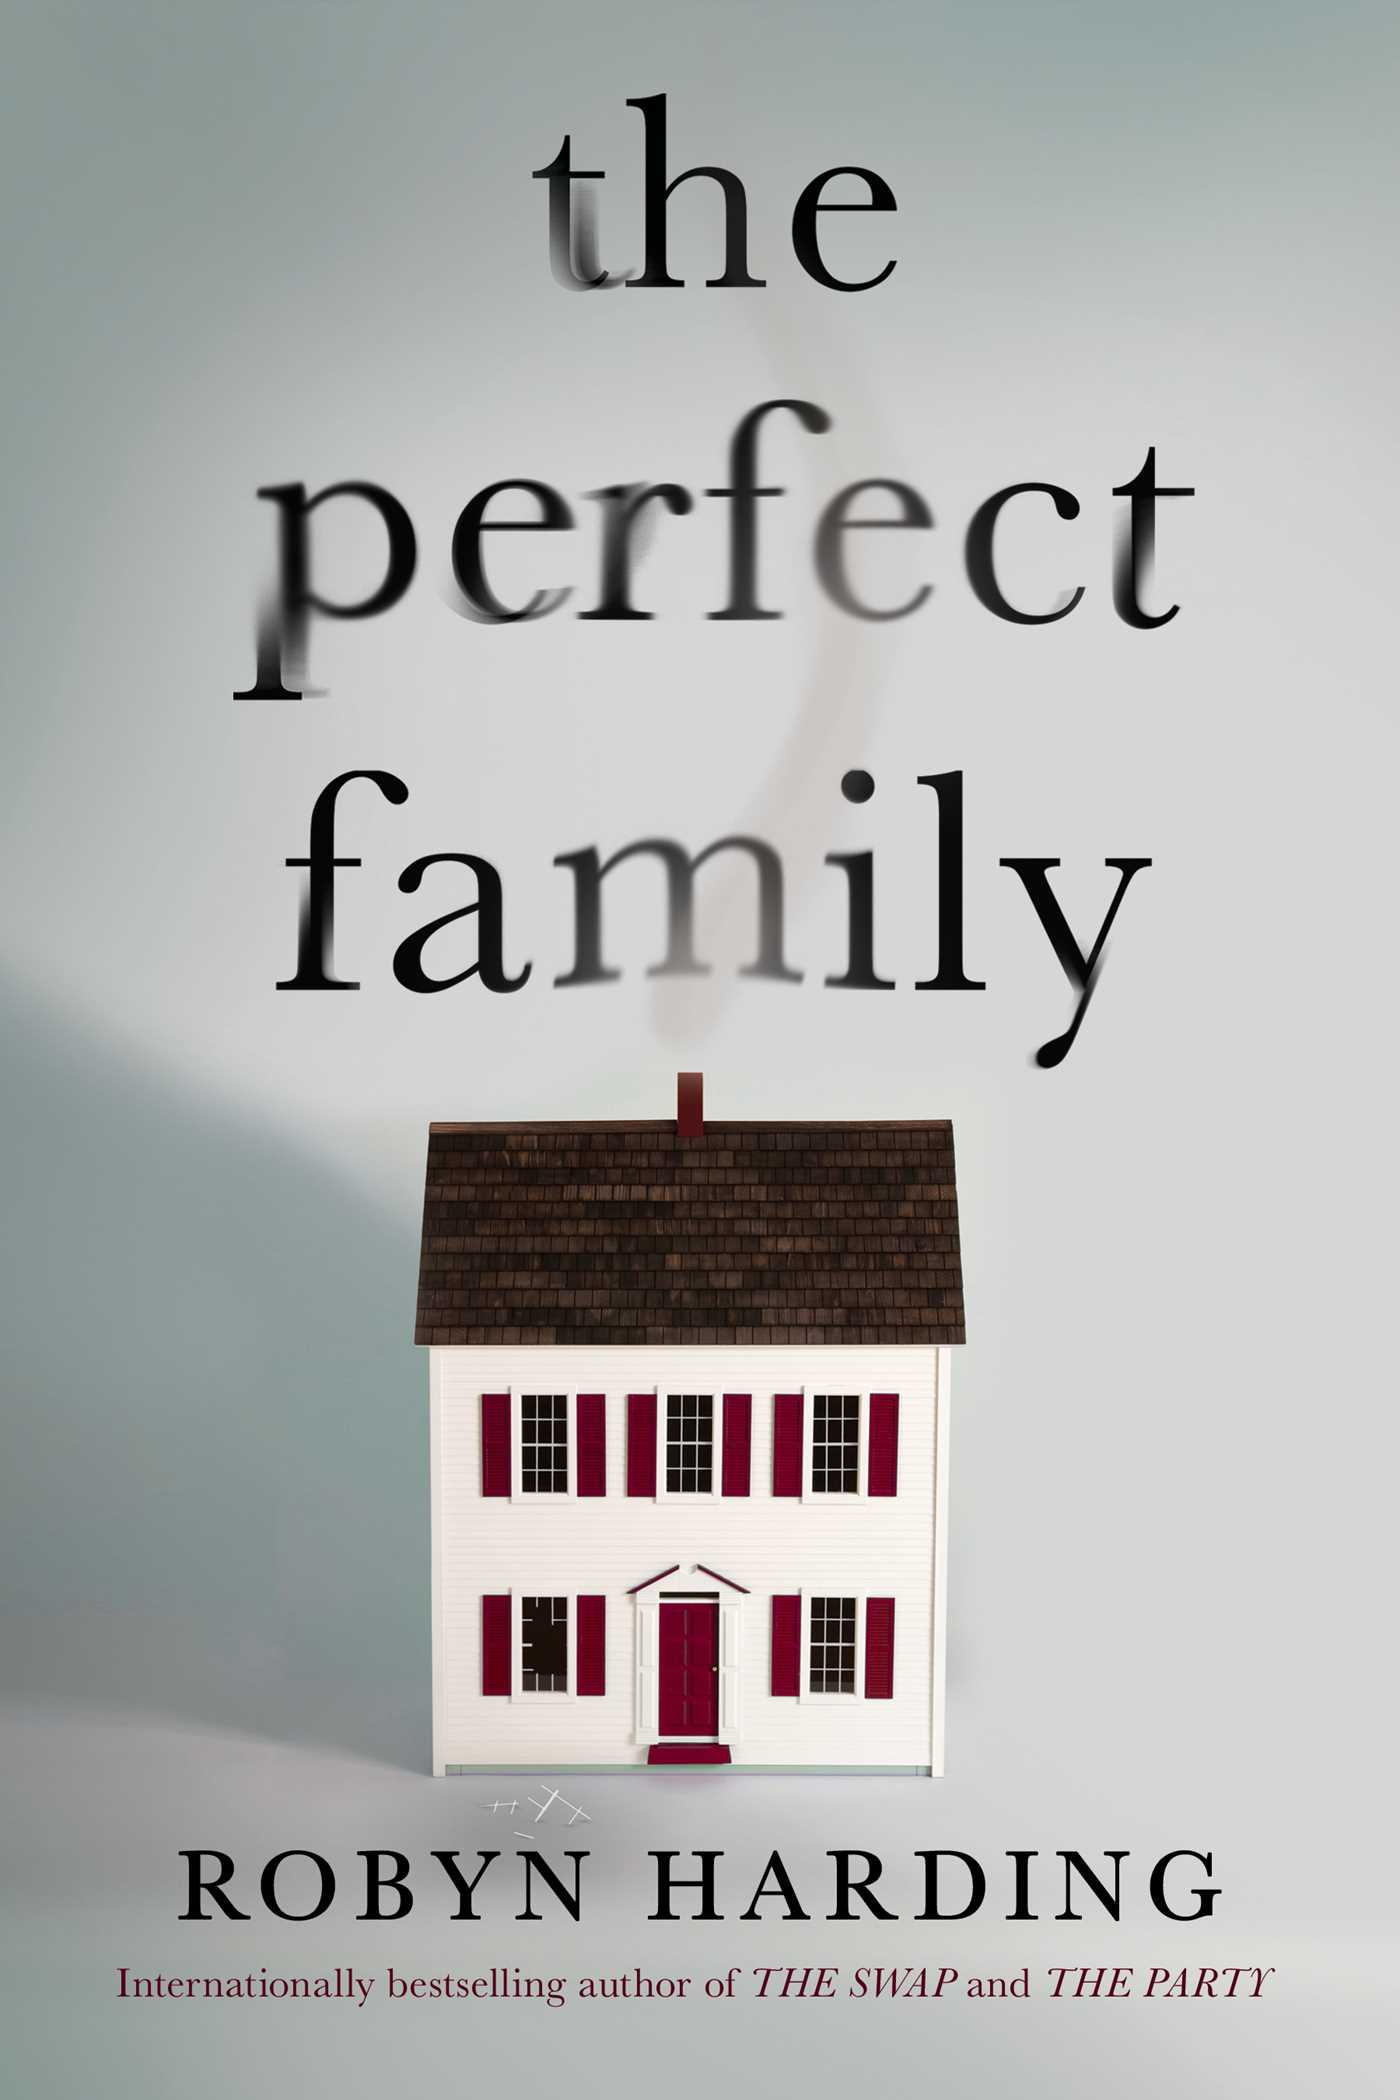 When Does The Perfect Family Release? Robyn Harding 2021 New Releases